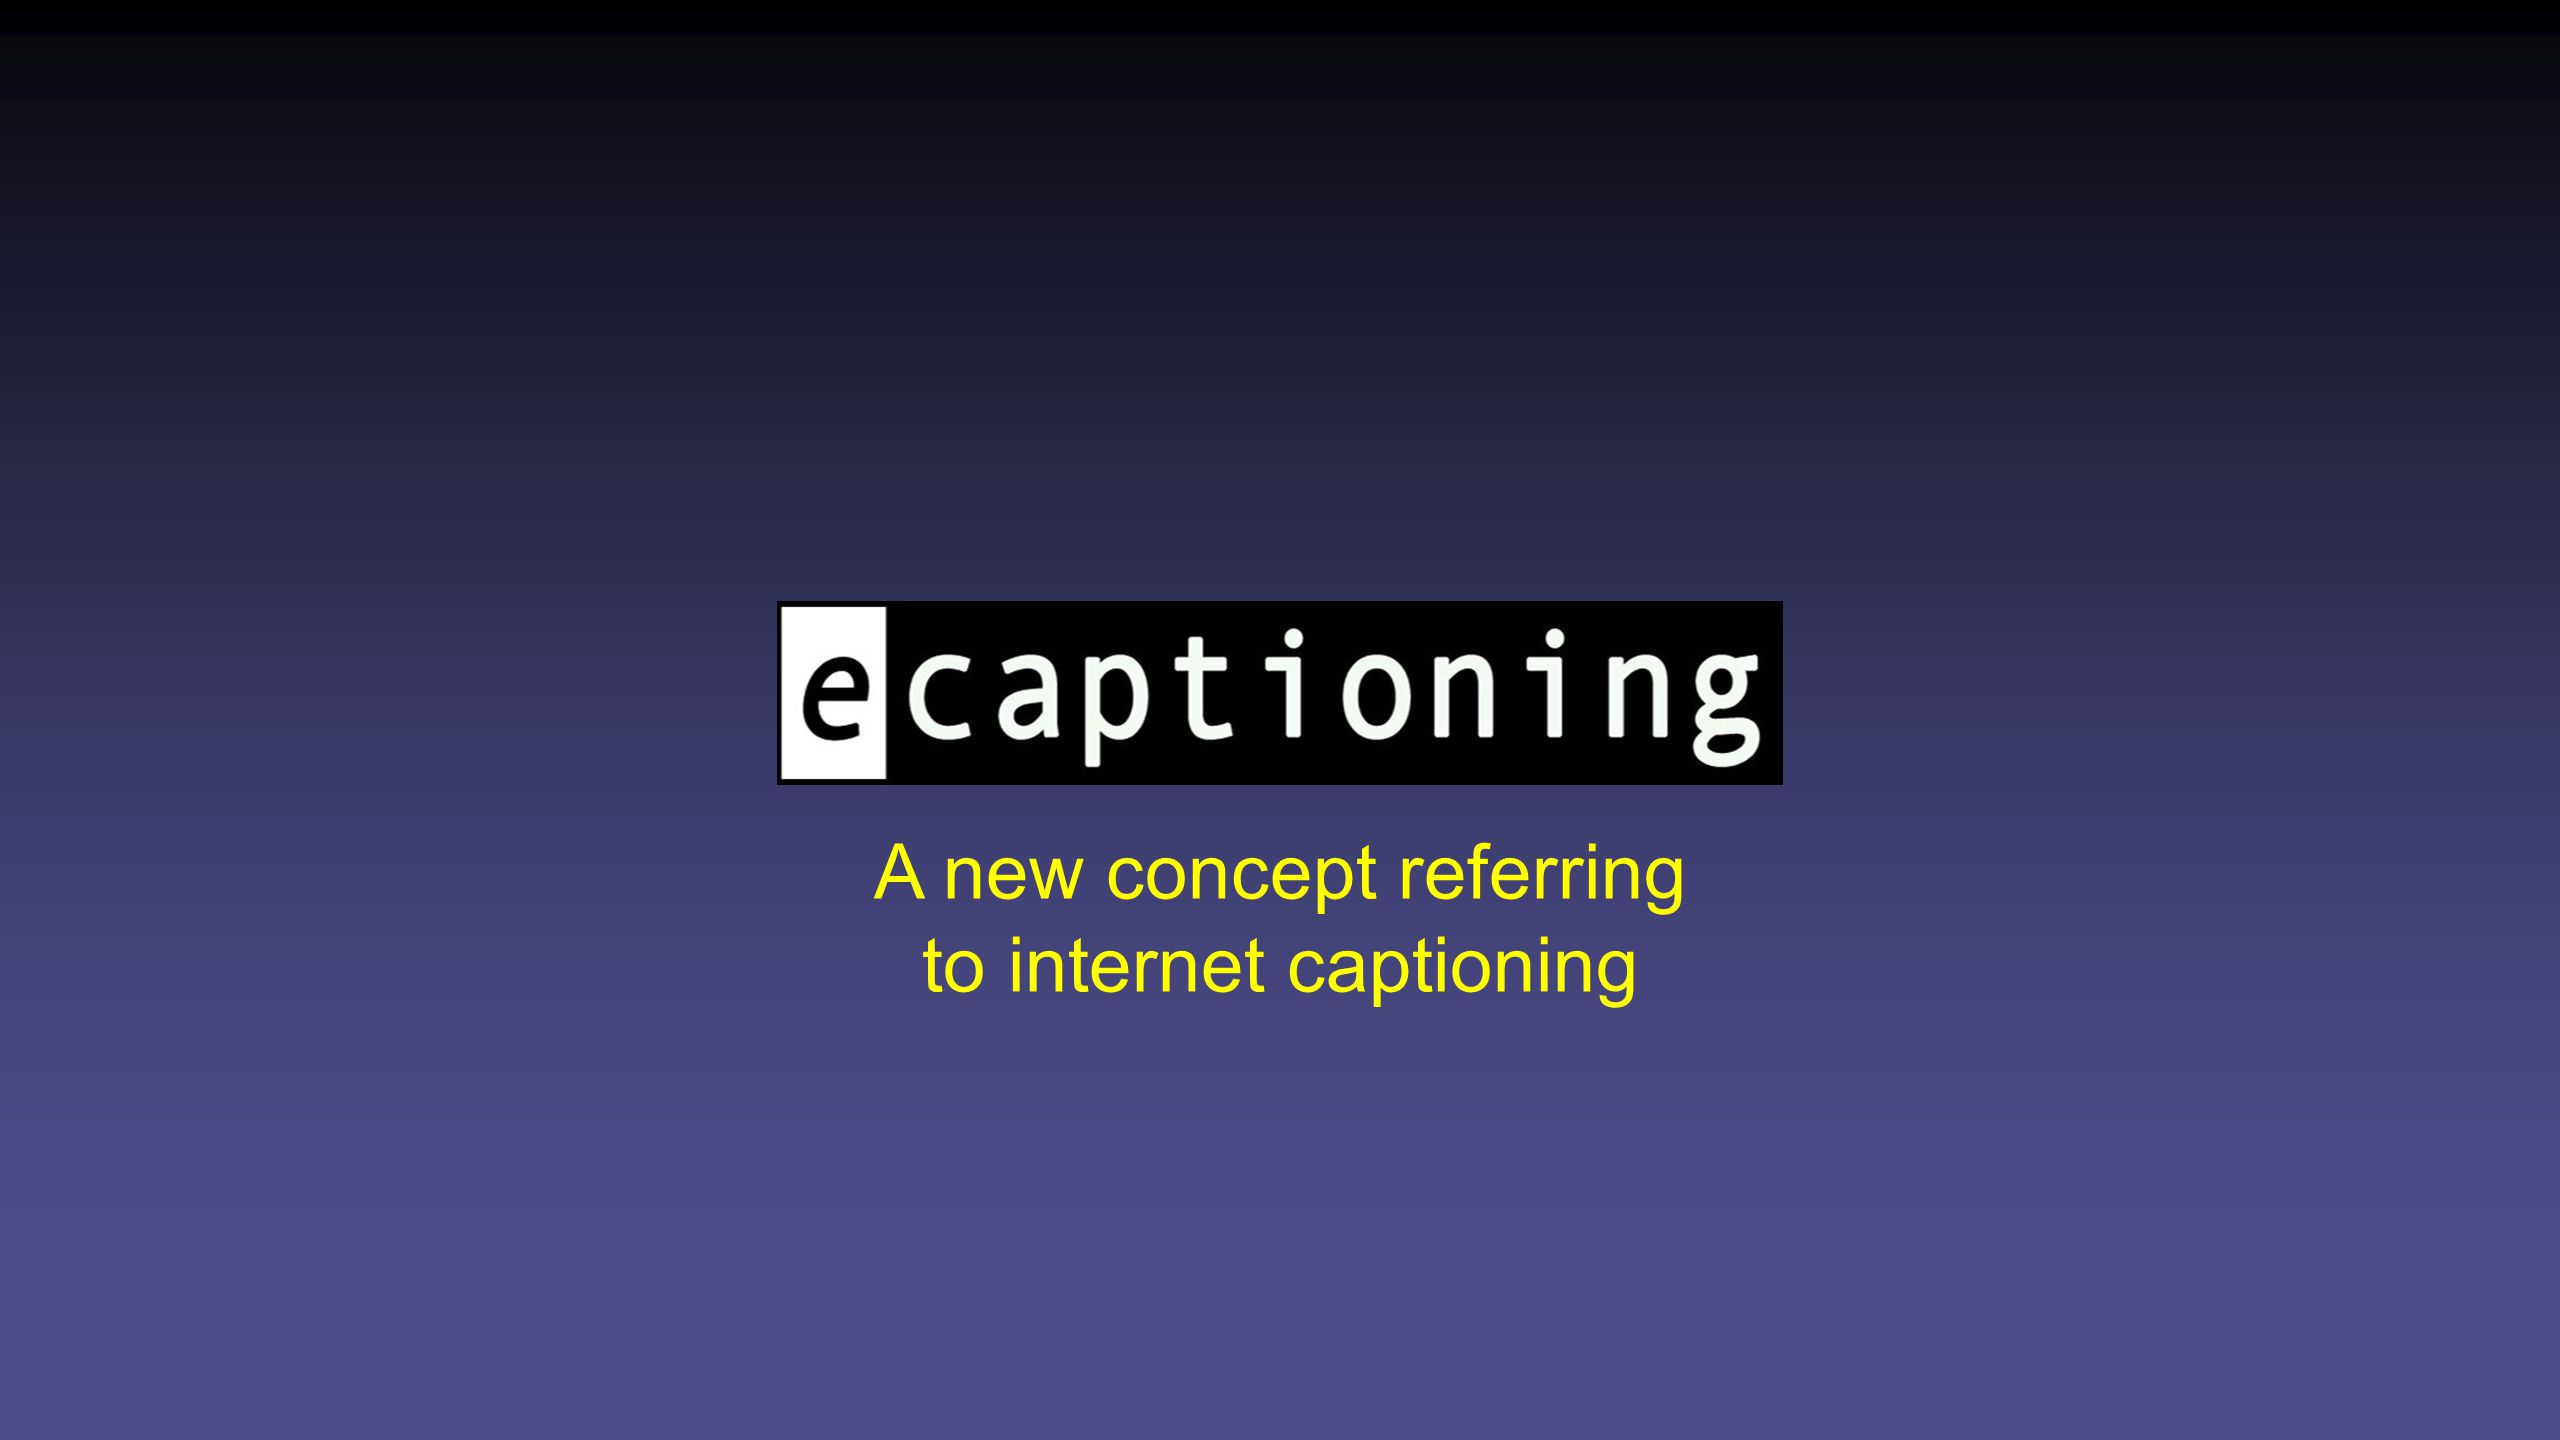 A new concept referring to internet captioning